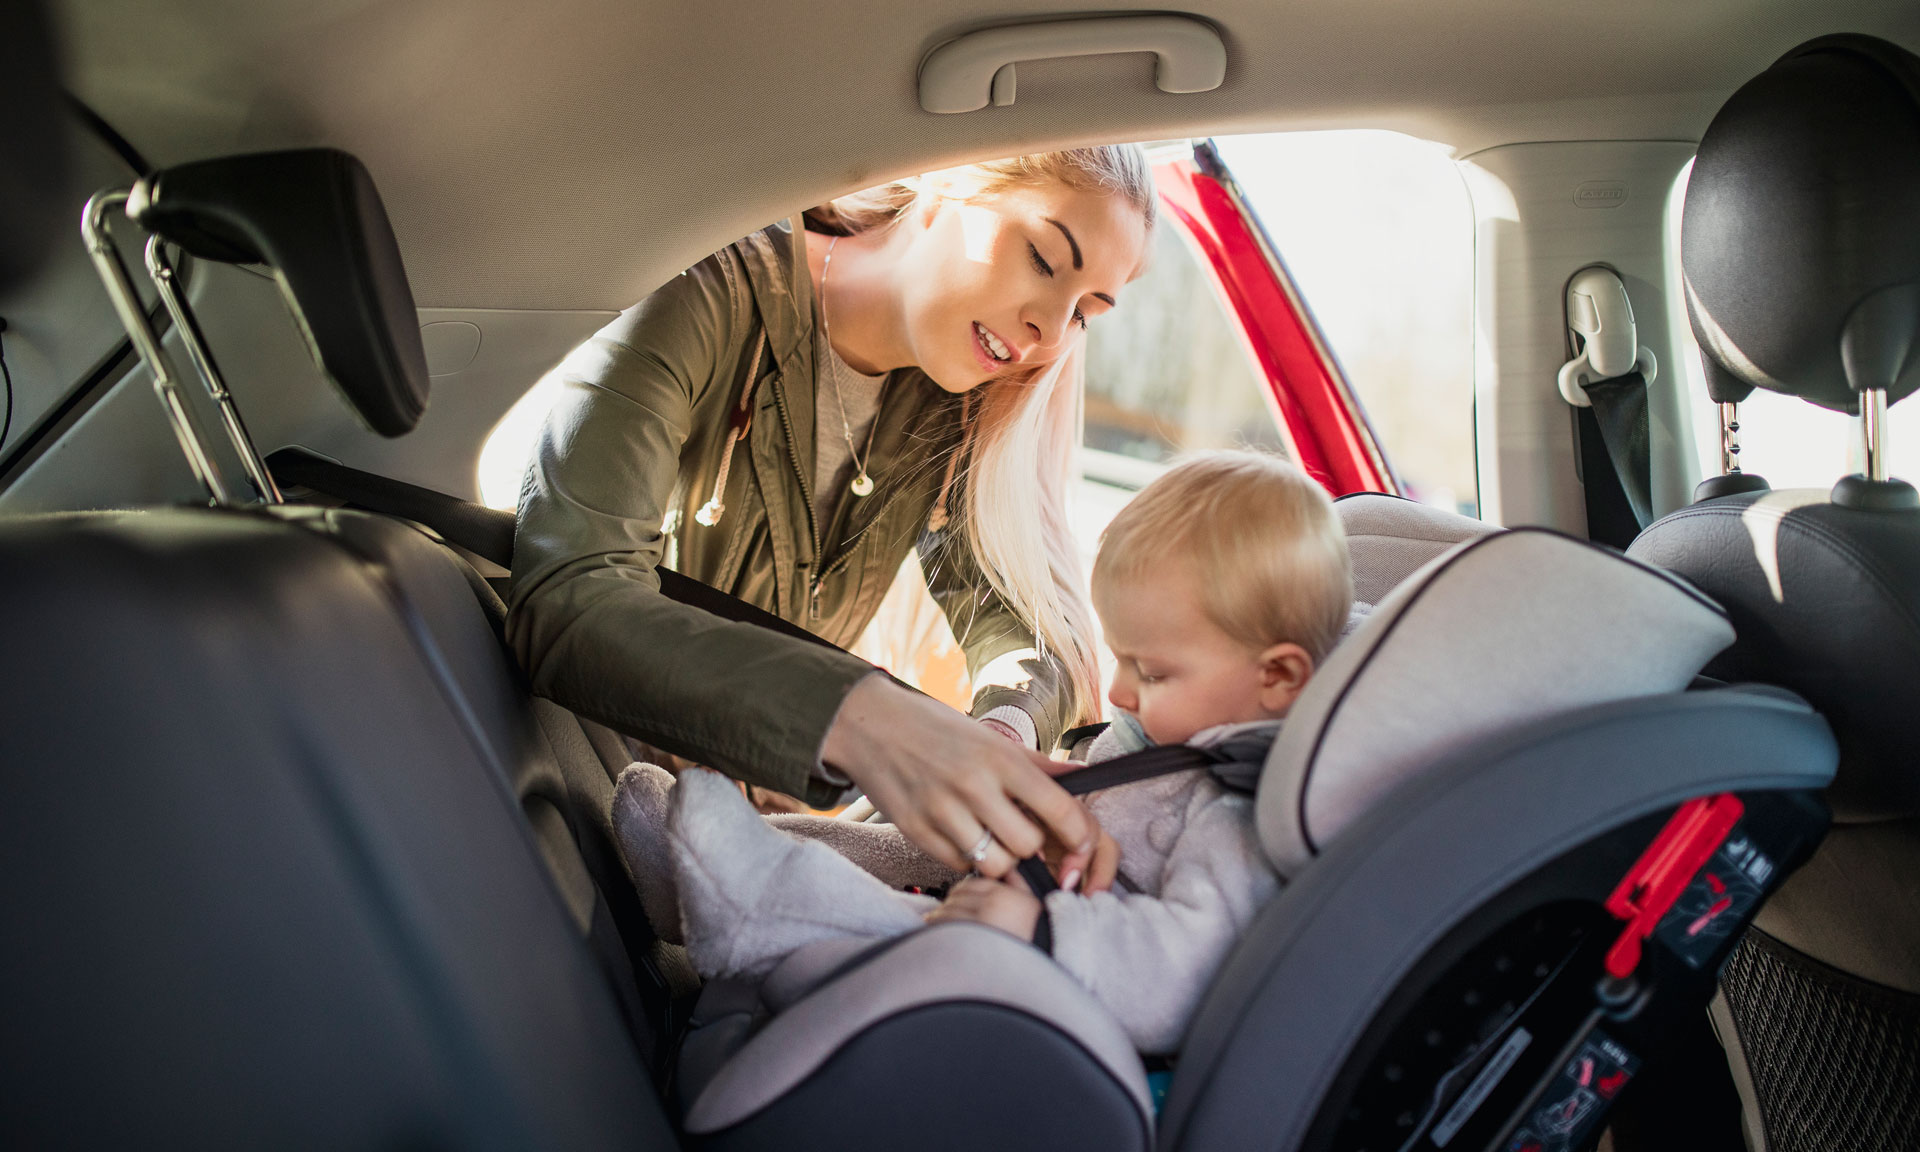 Mum strapping child in car seat